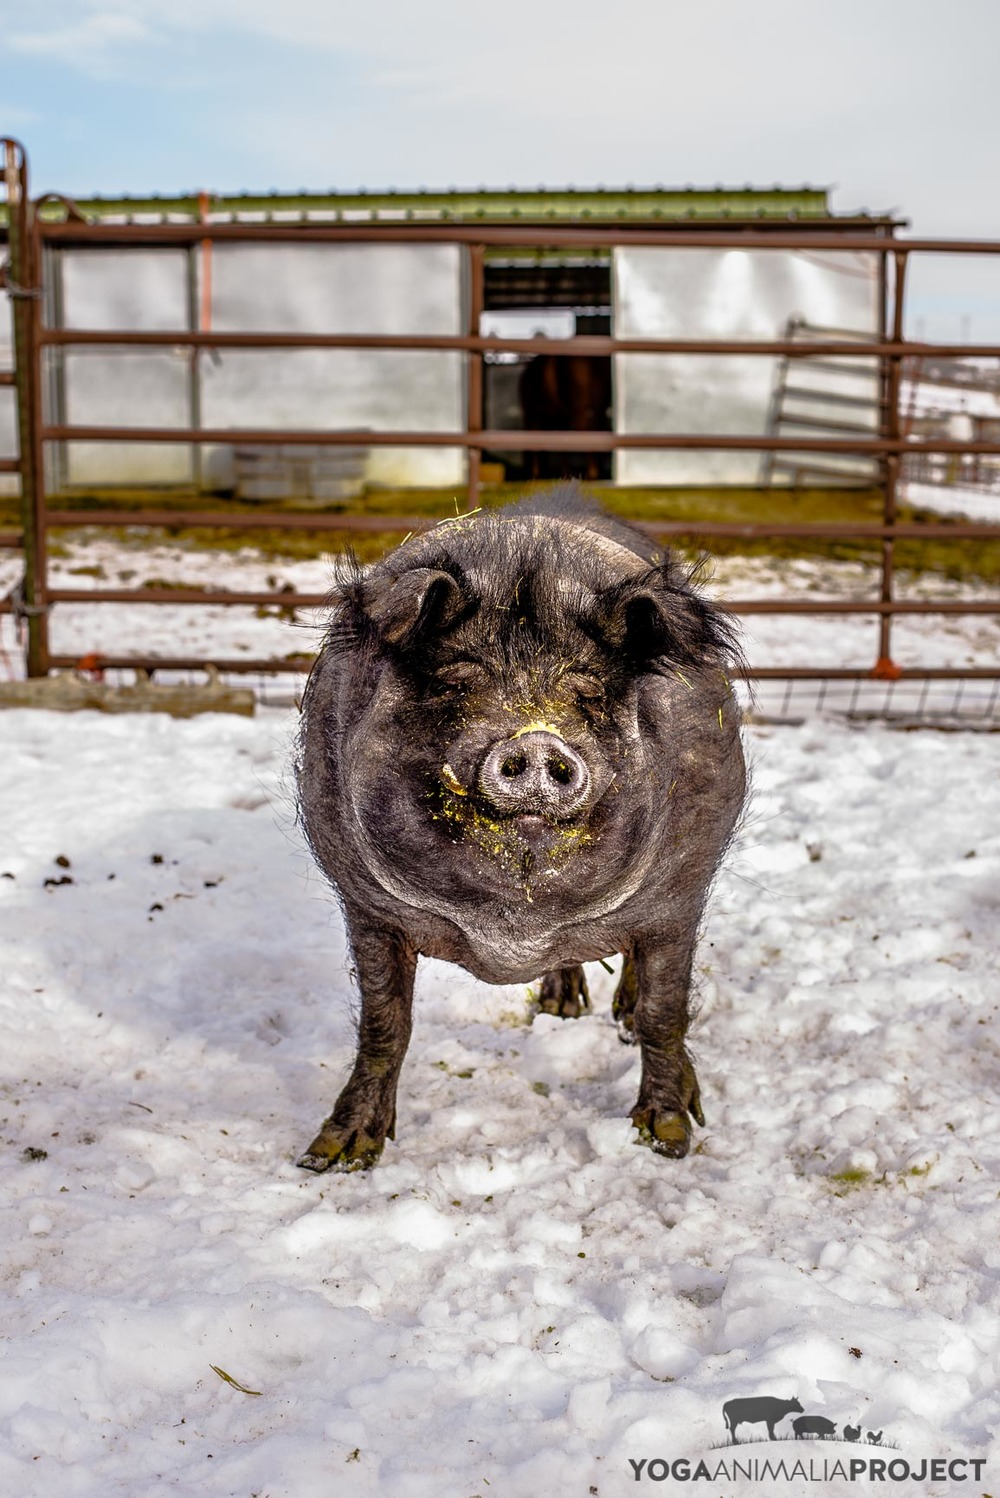 Harry Bob, Ching Farm Rescue & Sanctuary, Herriman, Utah